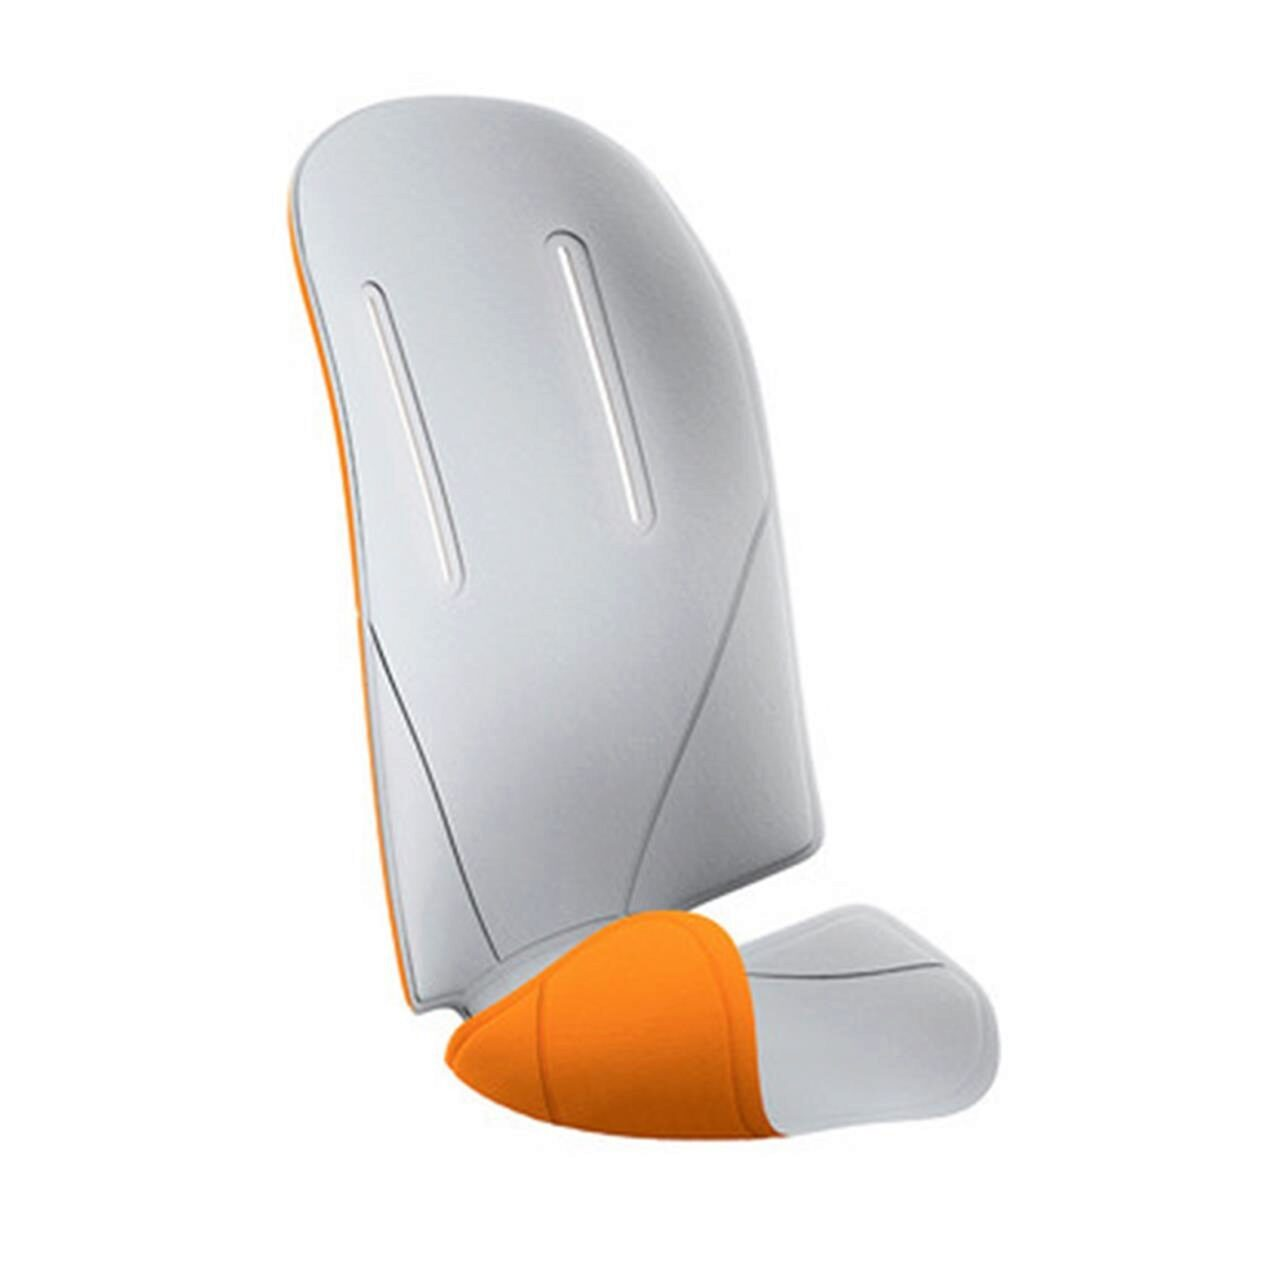 Thule RideAlong - Paddings Light Grey/Orange - Husa pentru Thule RideAlong gri deschis/portocaliu